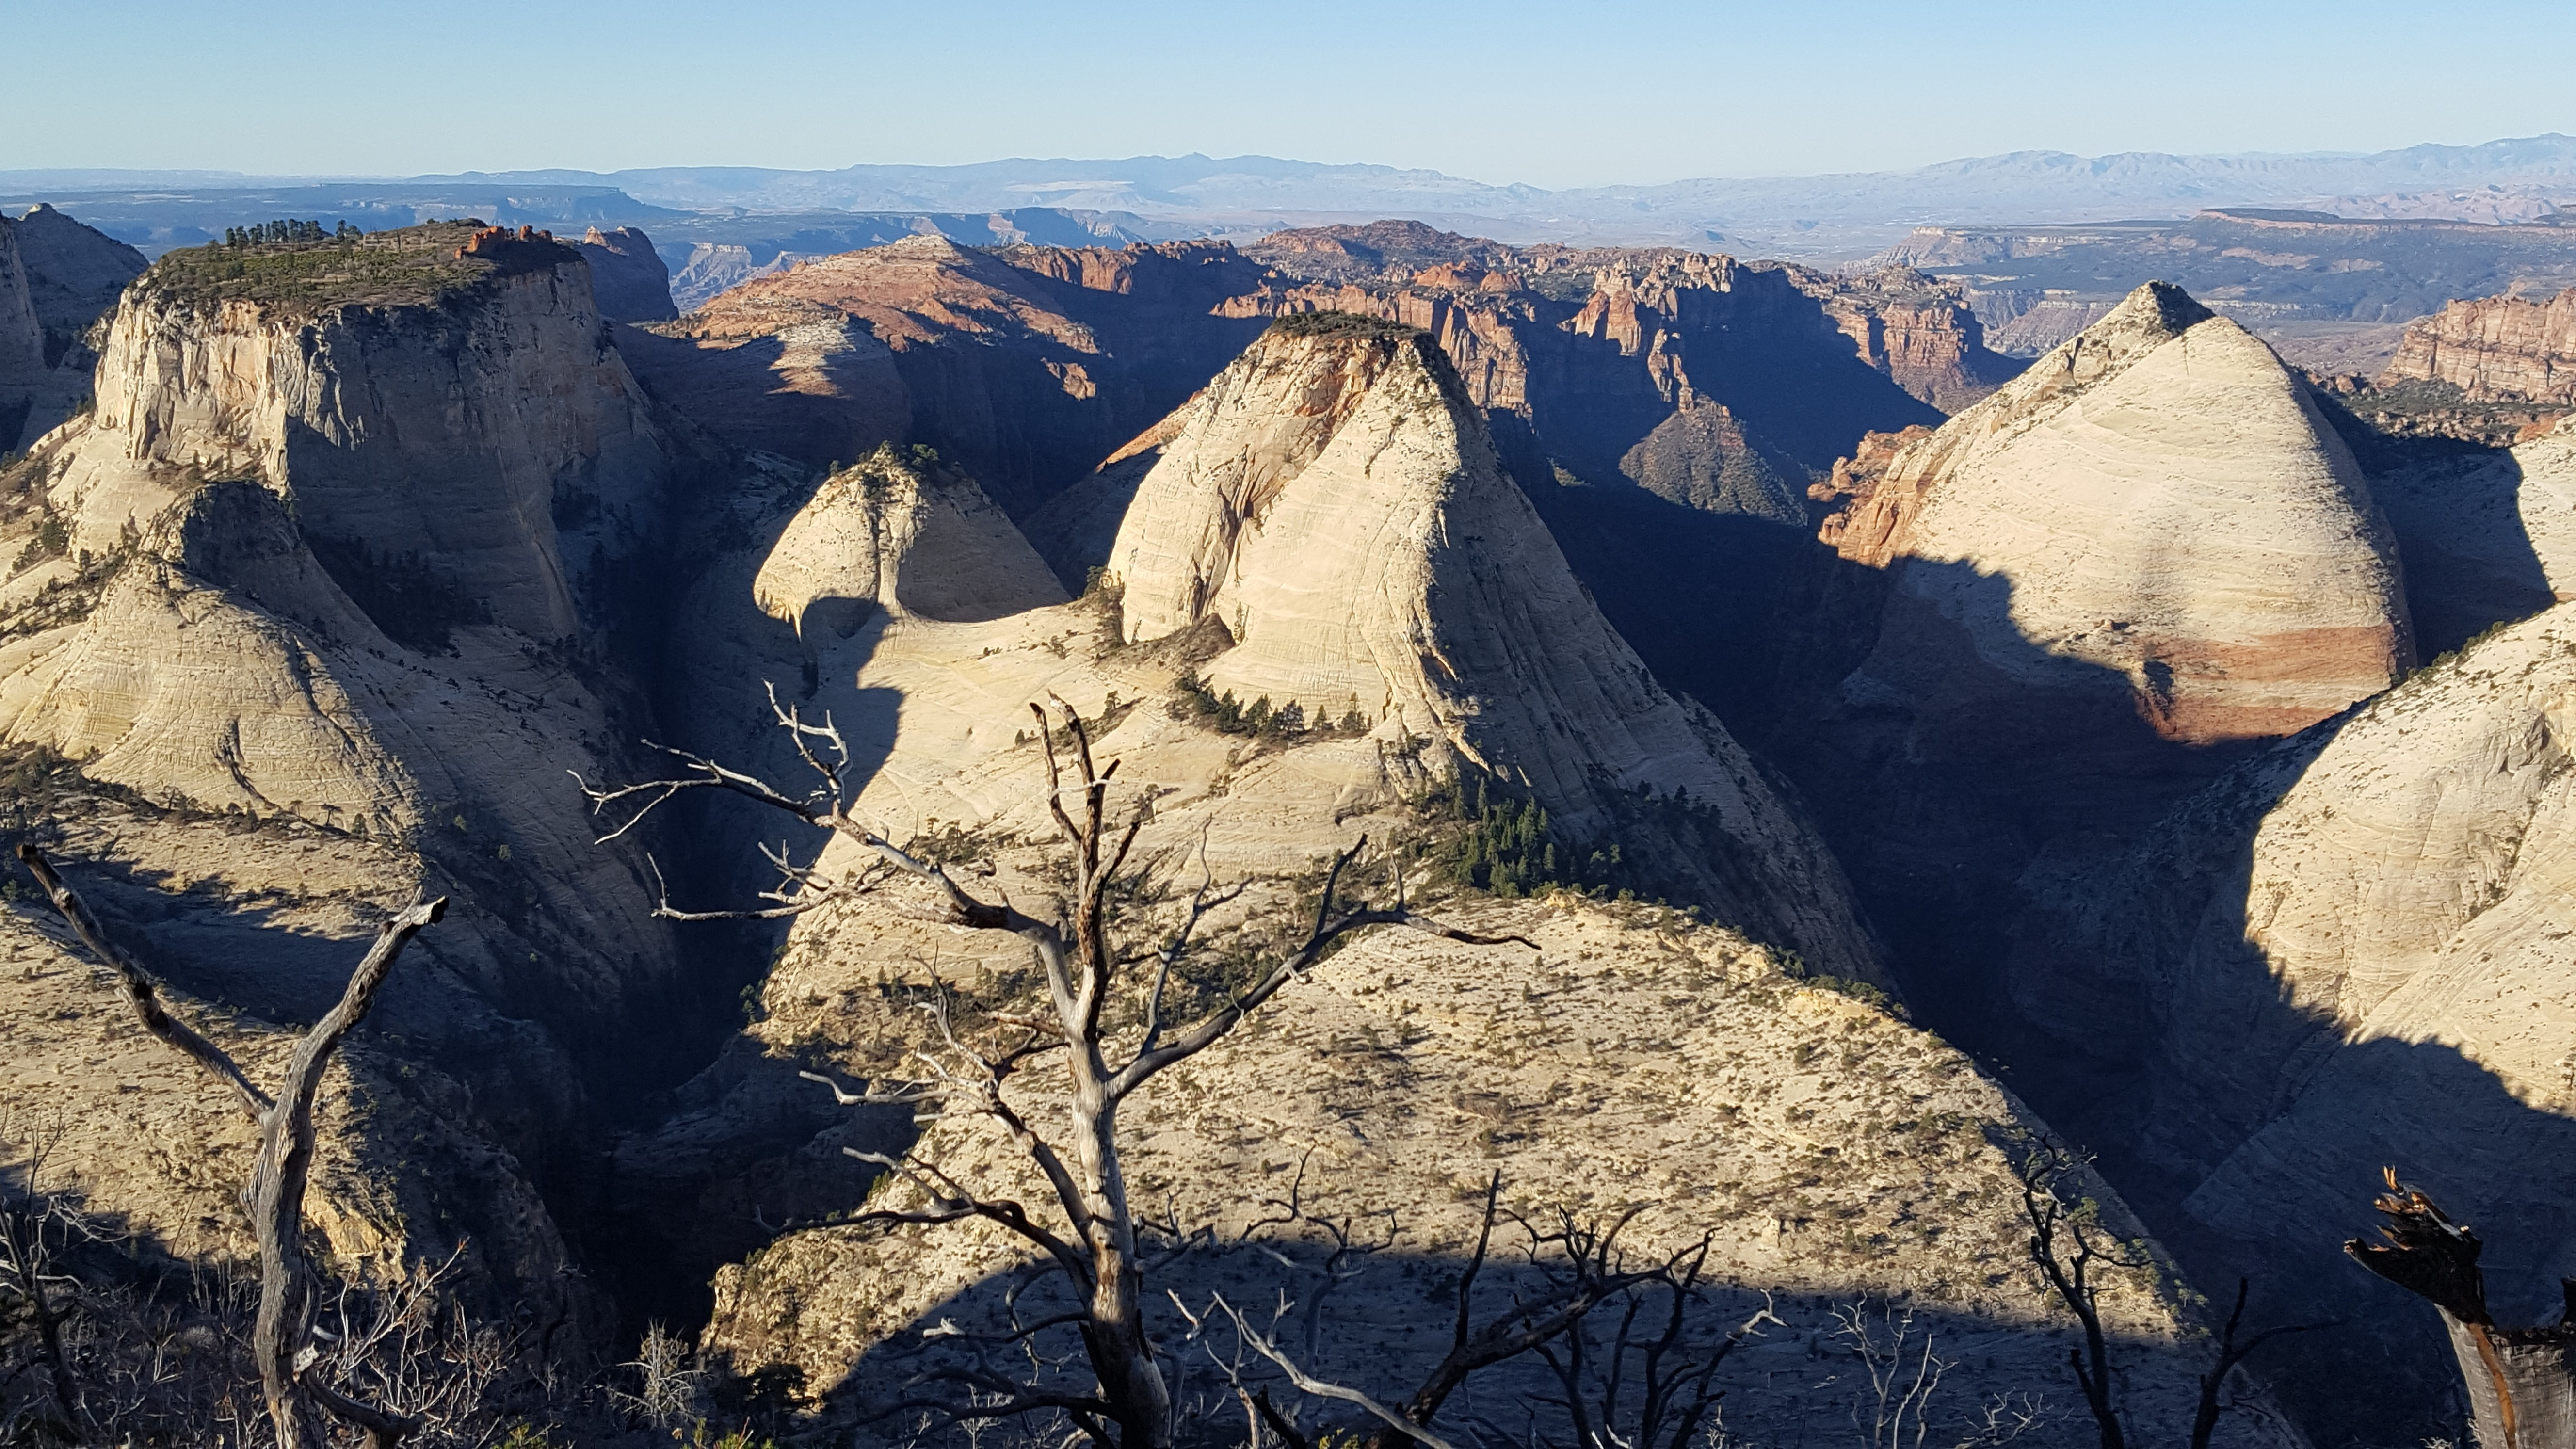 West Rim Trail – Zion National Park